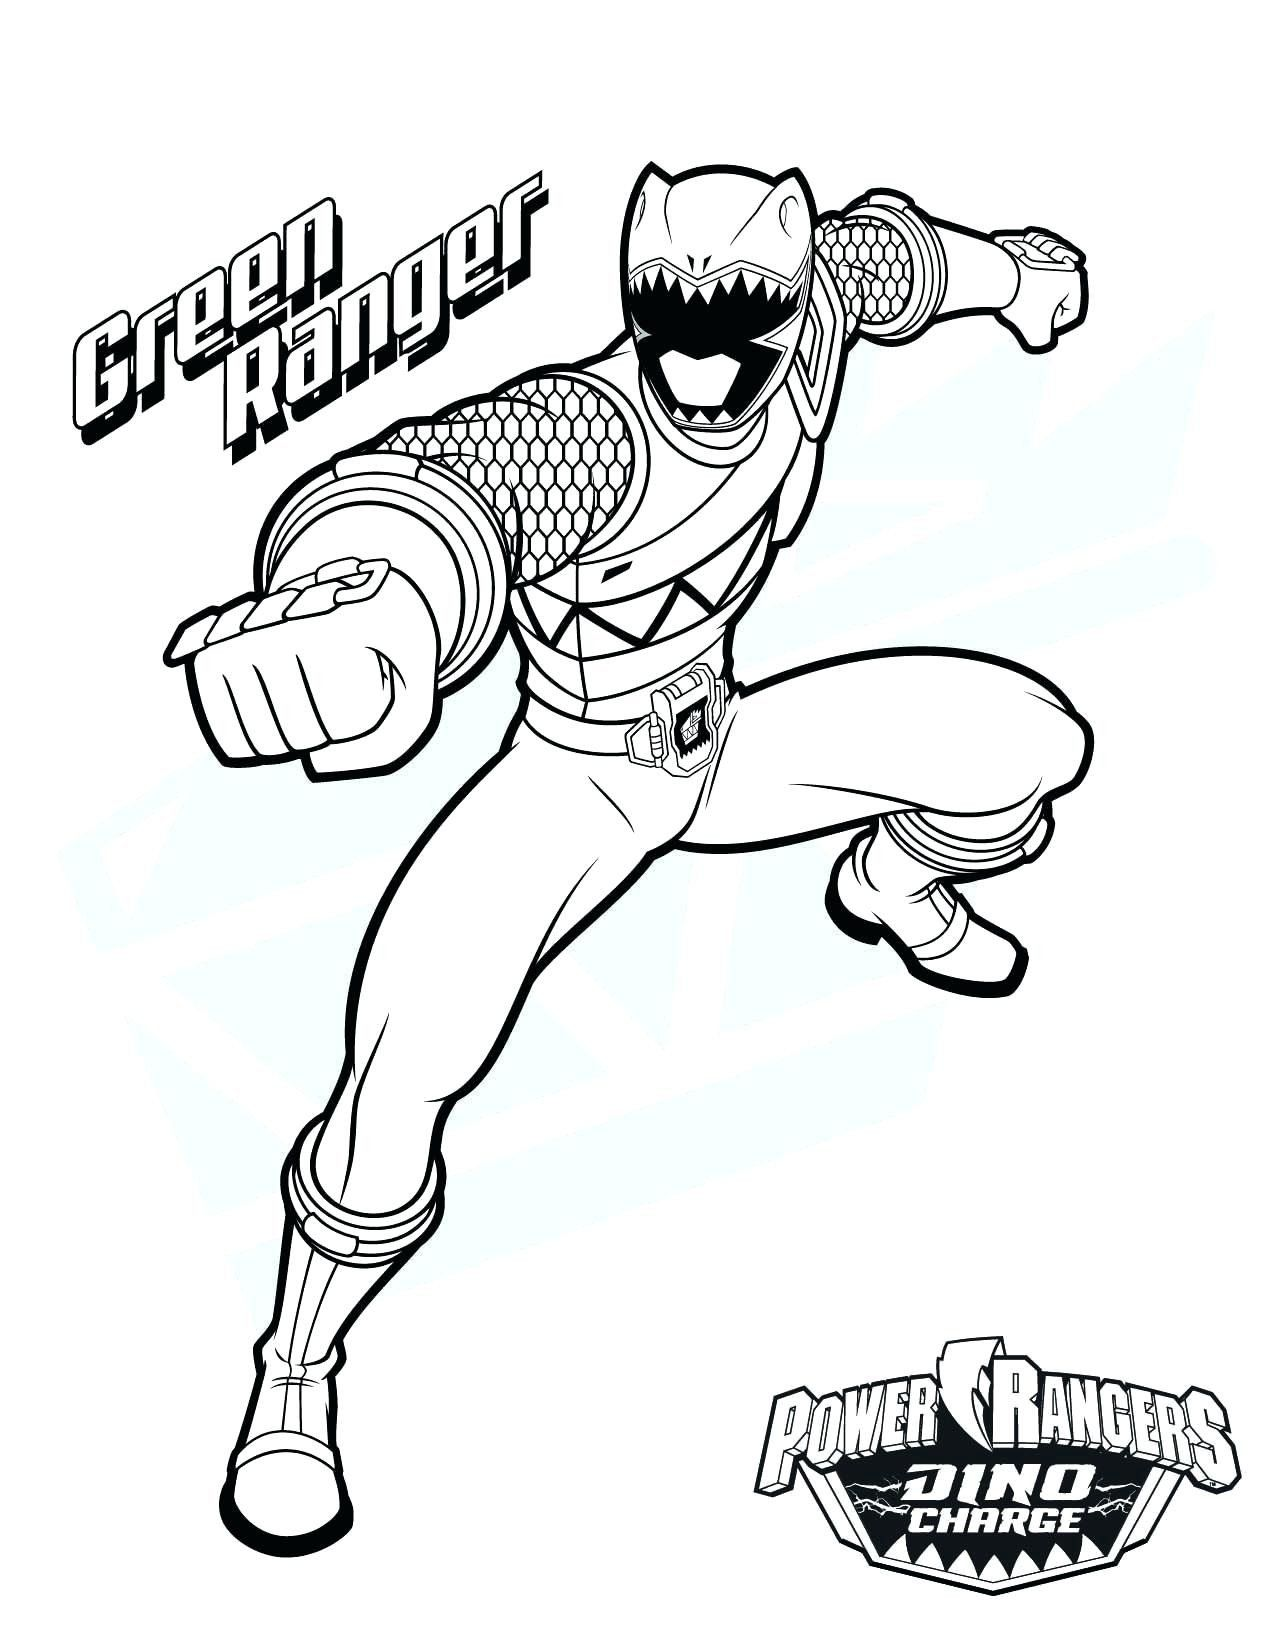 Power Ranger Coloring Pages Luxury Power Rangers Dino